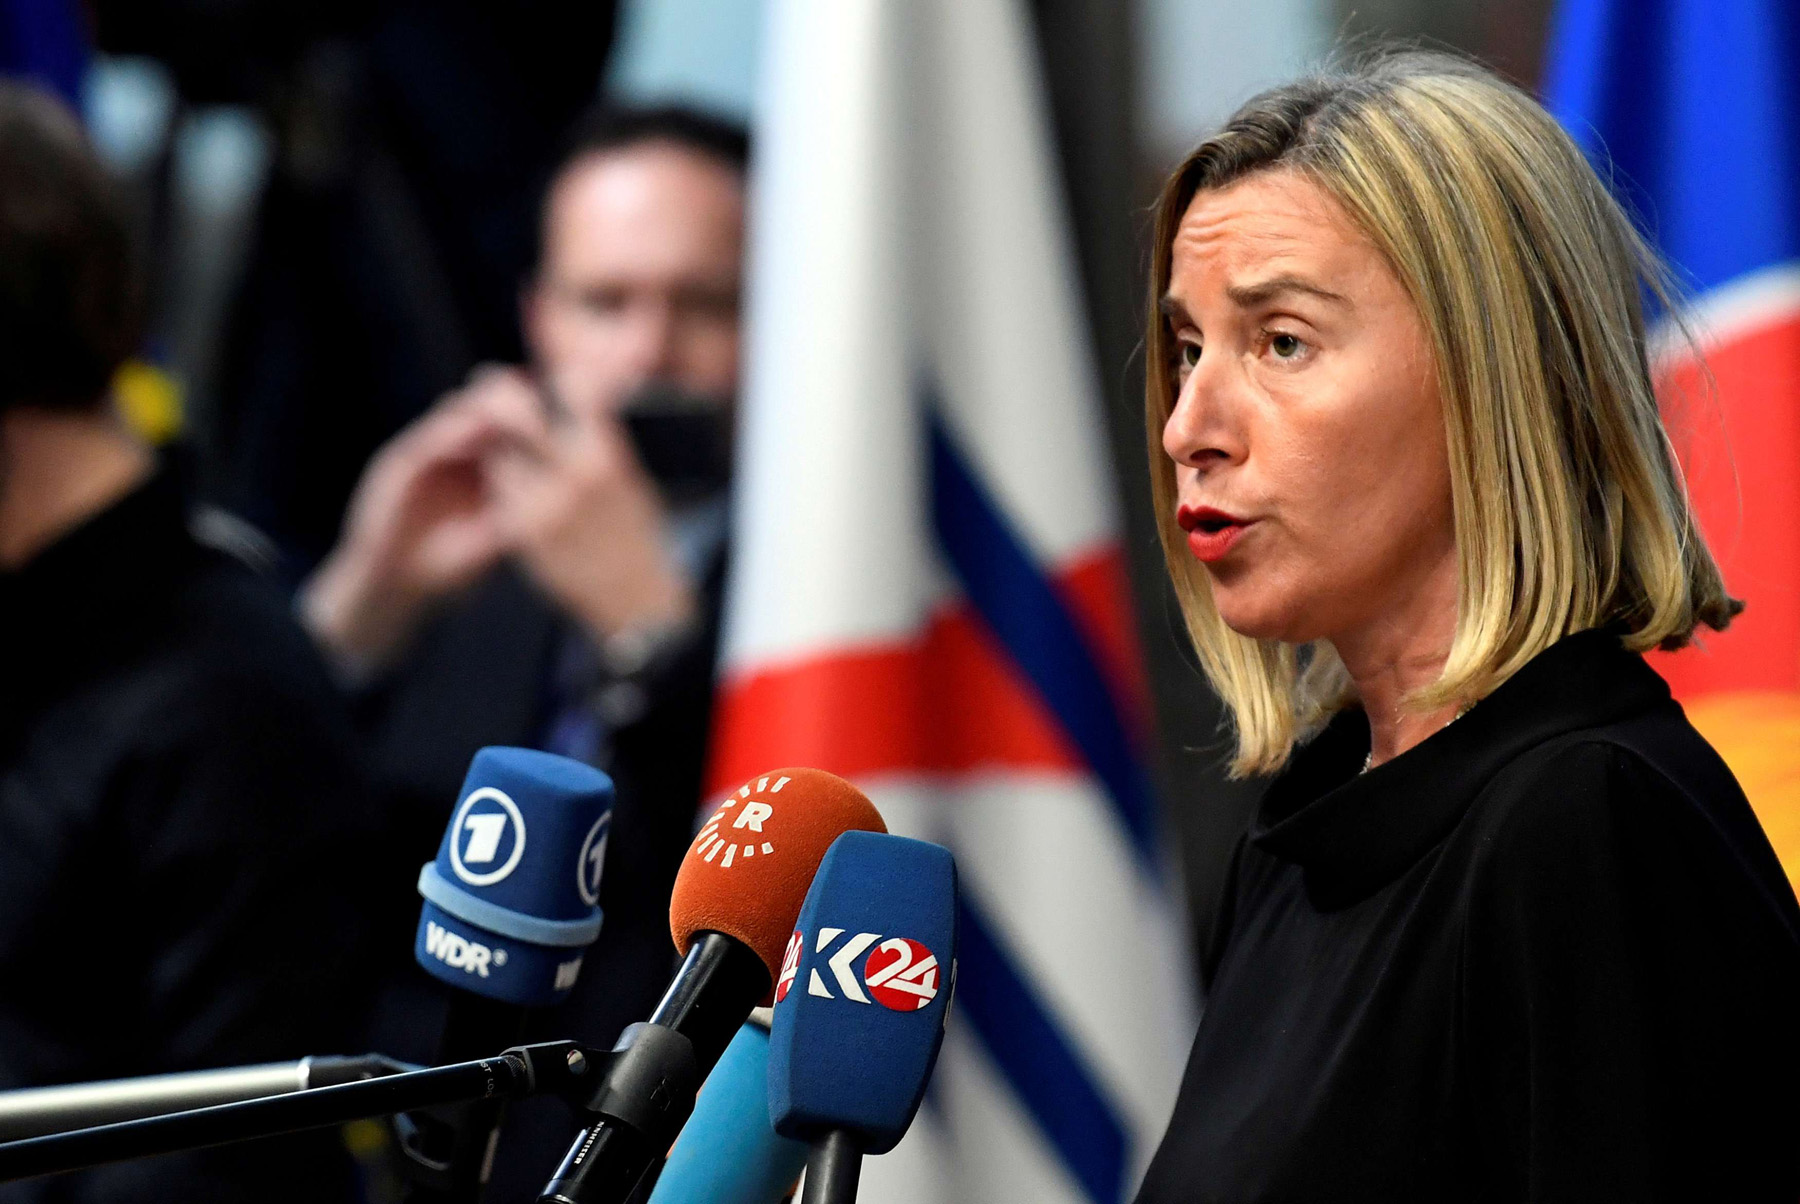 European Union Foreign Policy Chief Federica Mogherini speaks to the media in Brussels, on October 18. (Reuters)